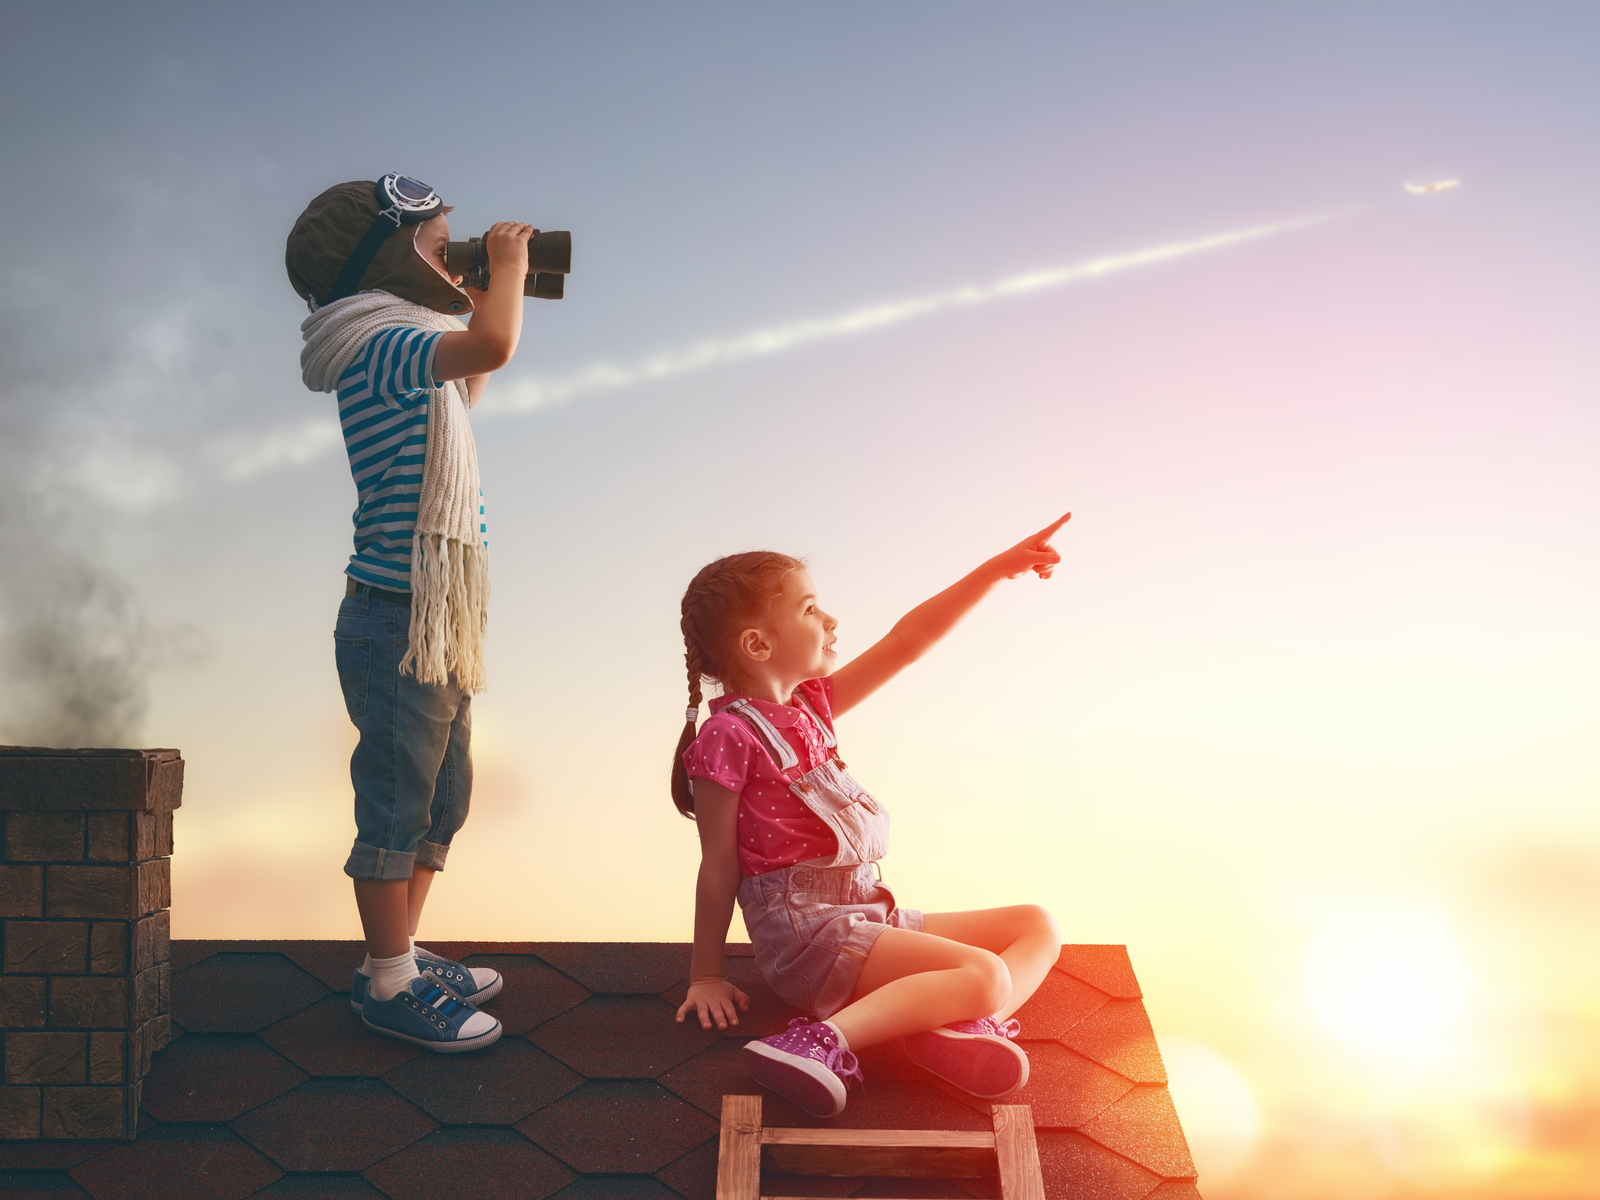 little-childrens-on-roof-watching-sky-gg.jpg